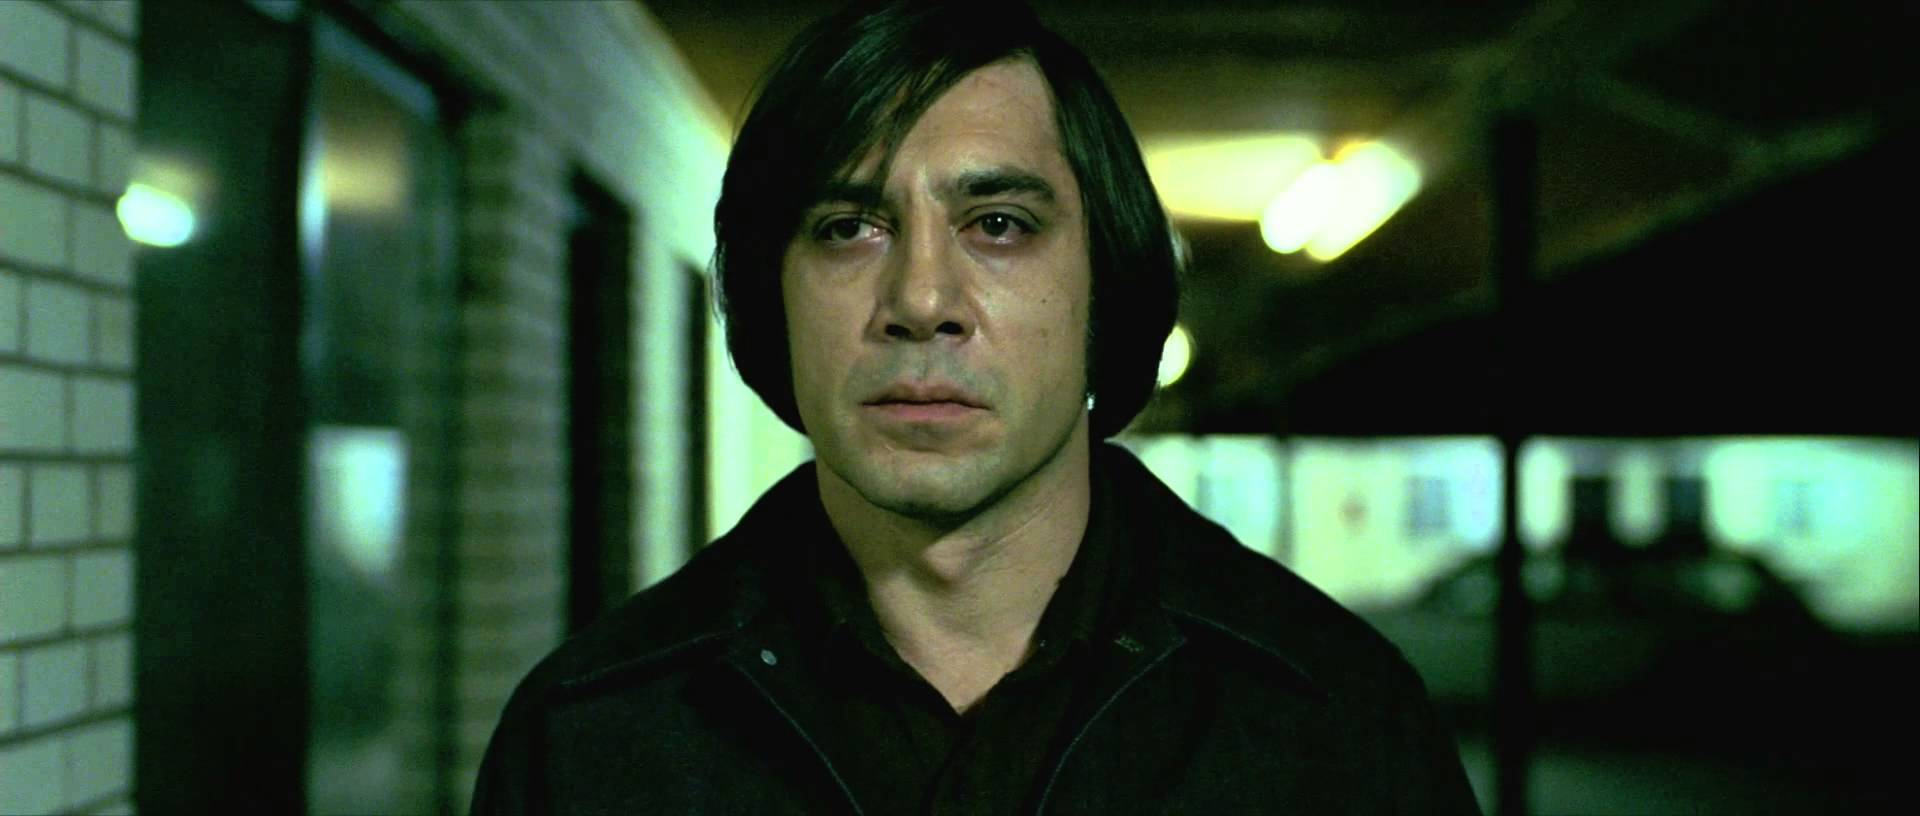 No Country for Old Men (2007) by Coen Brothers